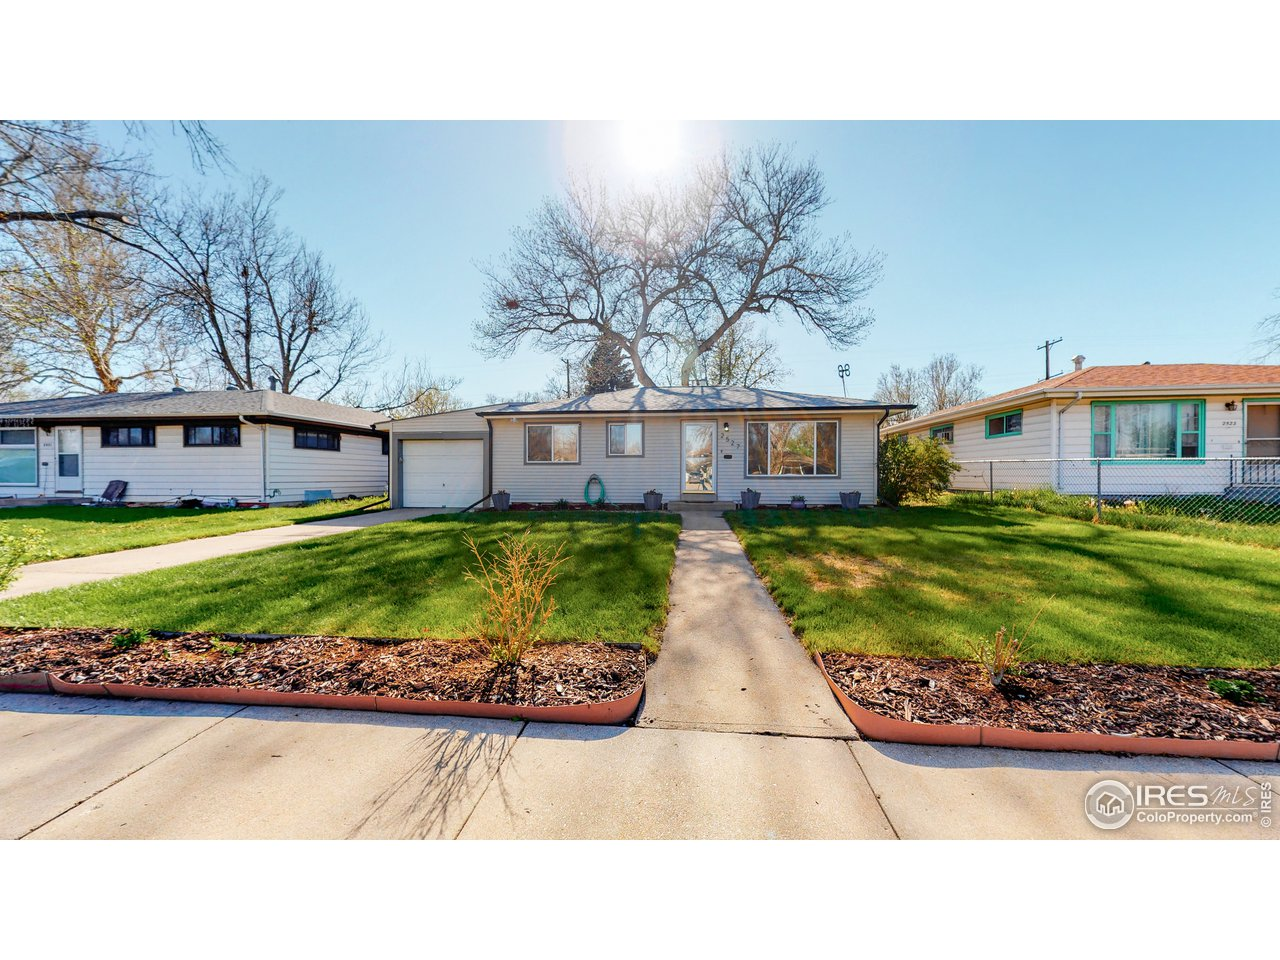 2527 15th Ave, Greeley CO 80631